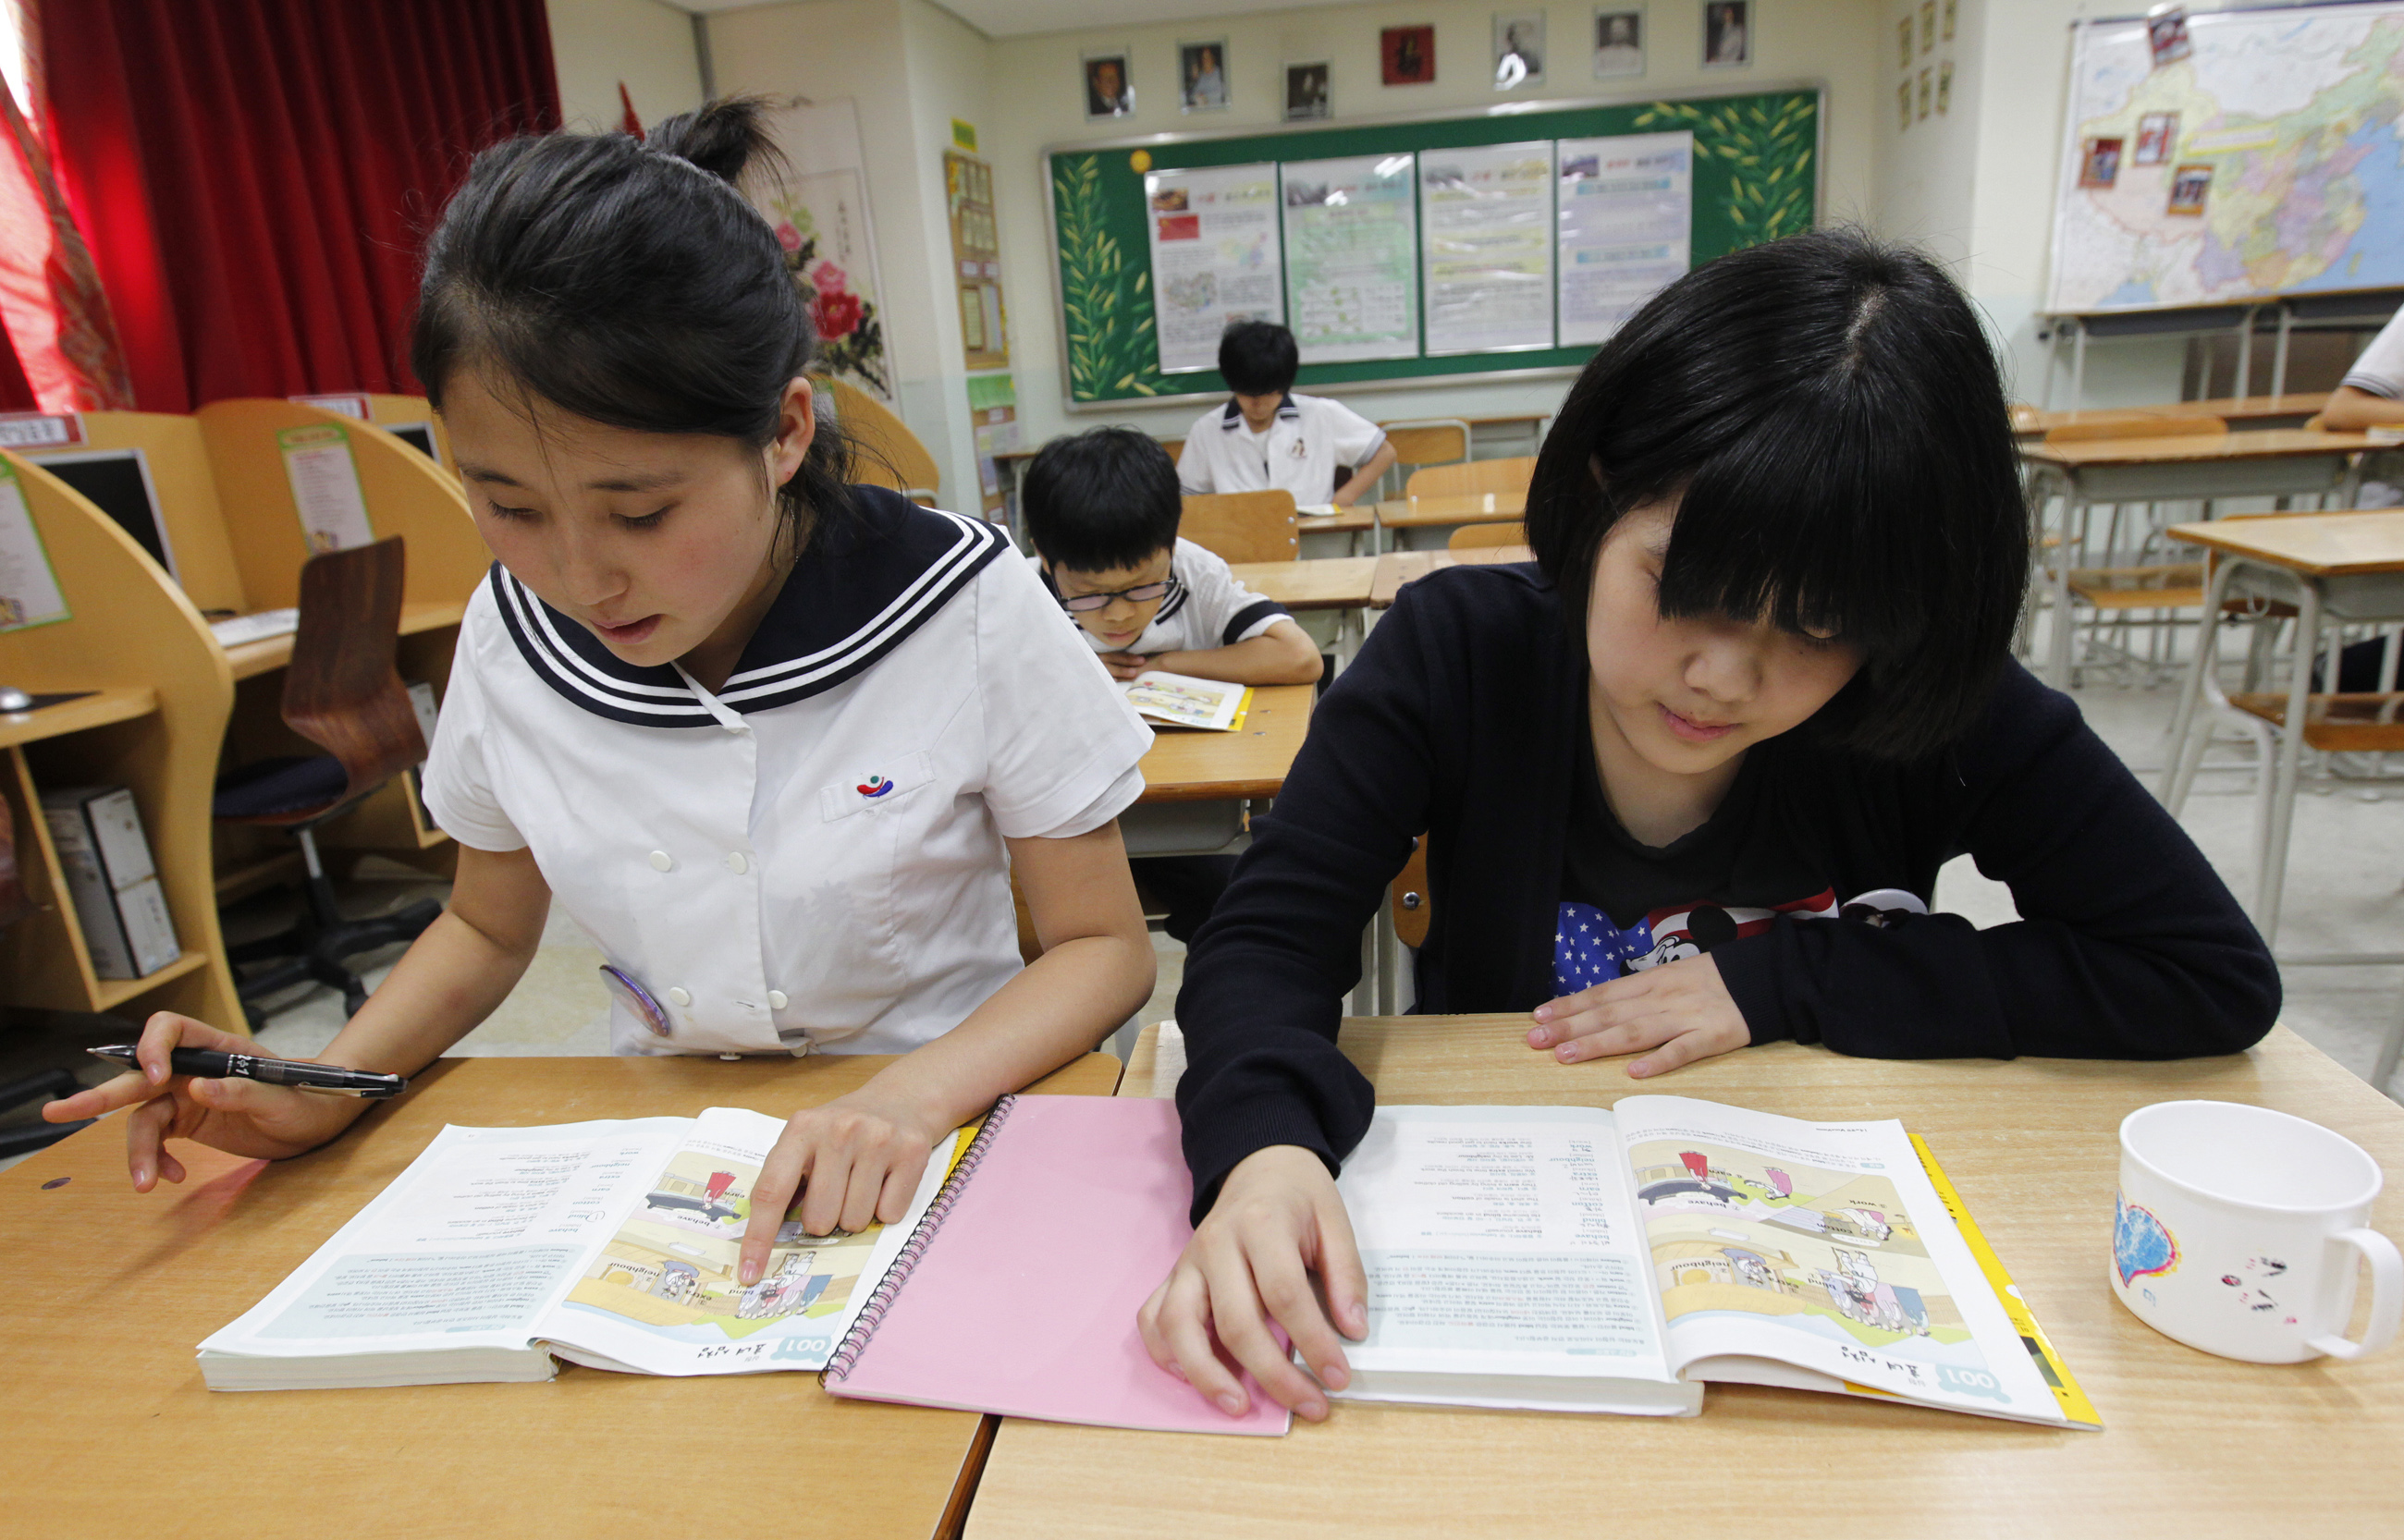 A selective strategy to advance social and emotional skills through textbooks